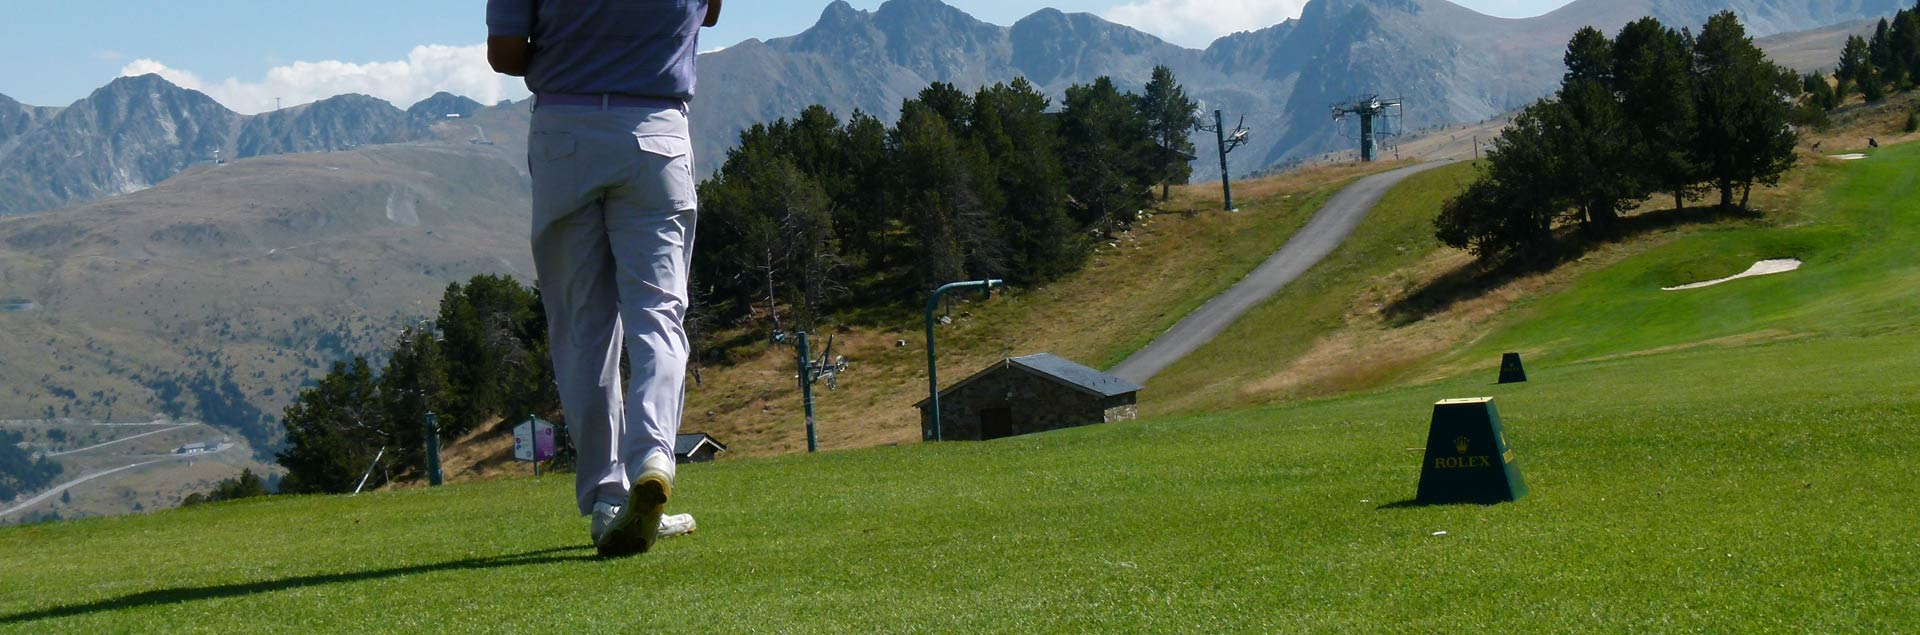 9 holes court of Grandvalira Soldeu